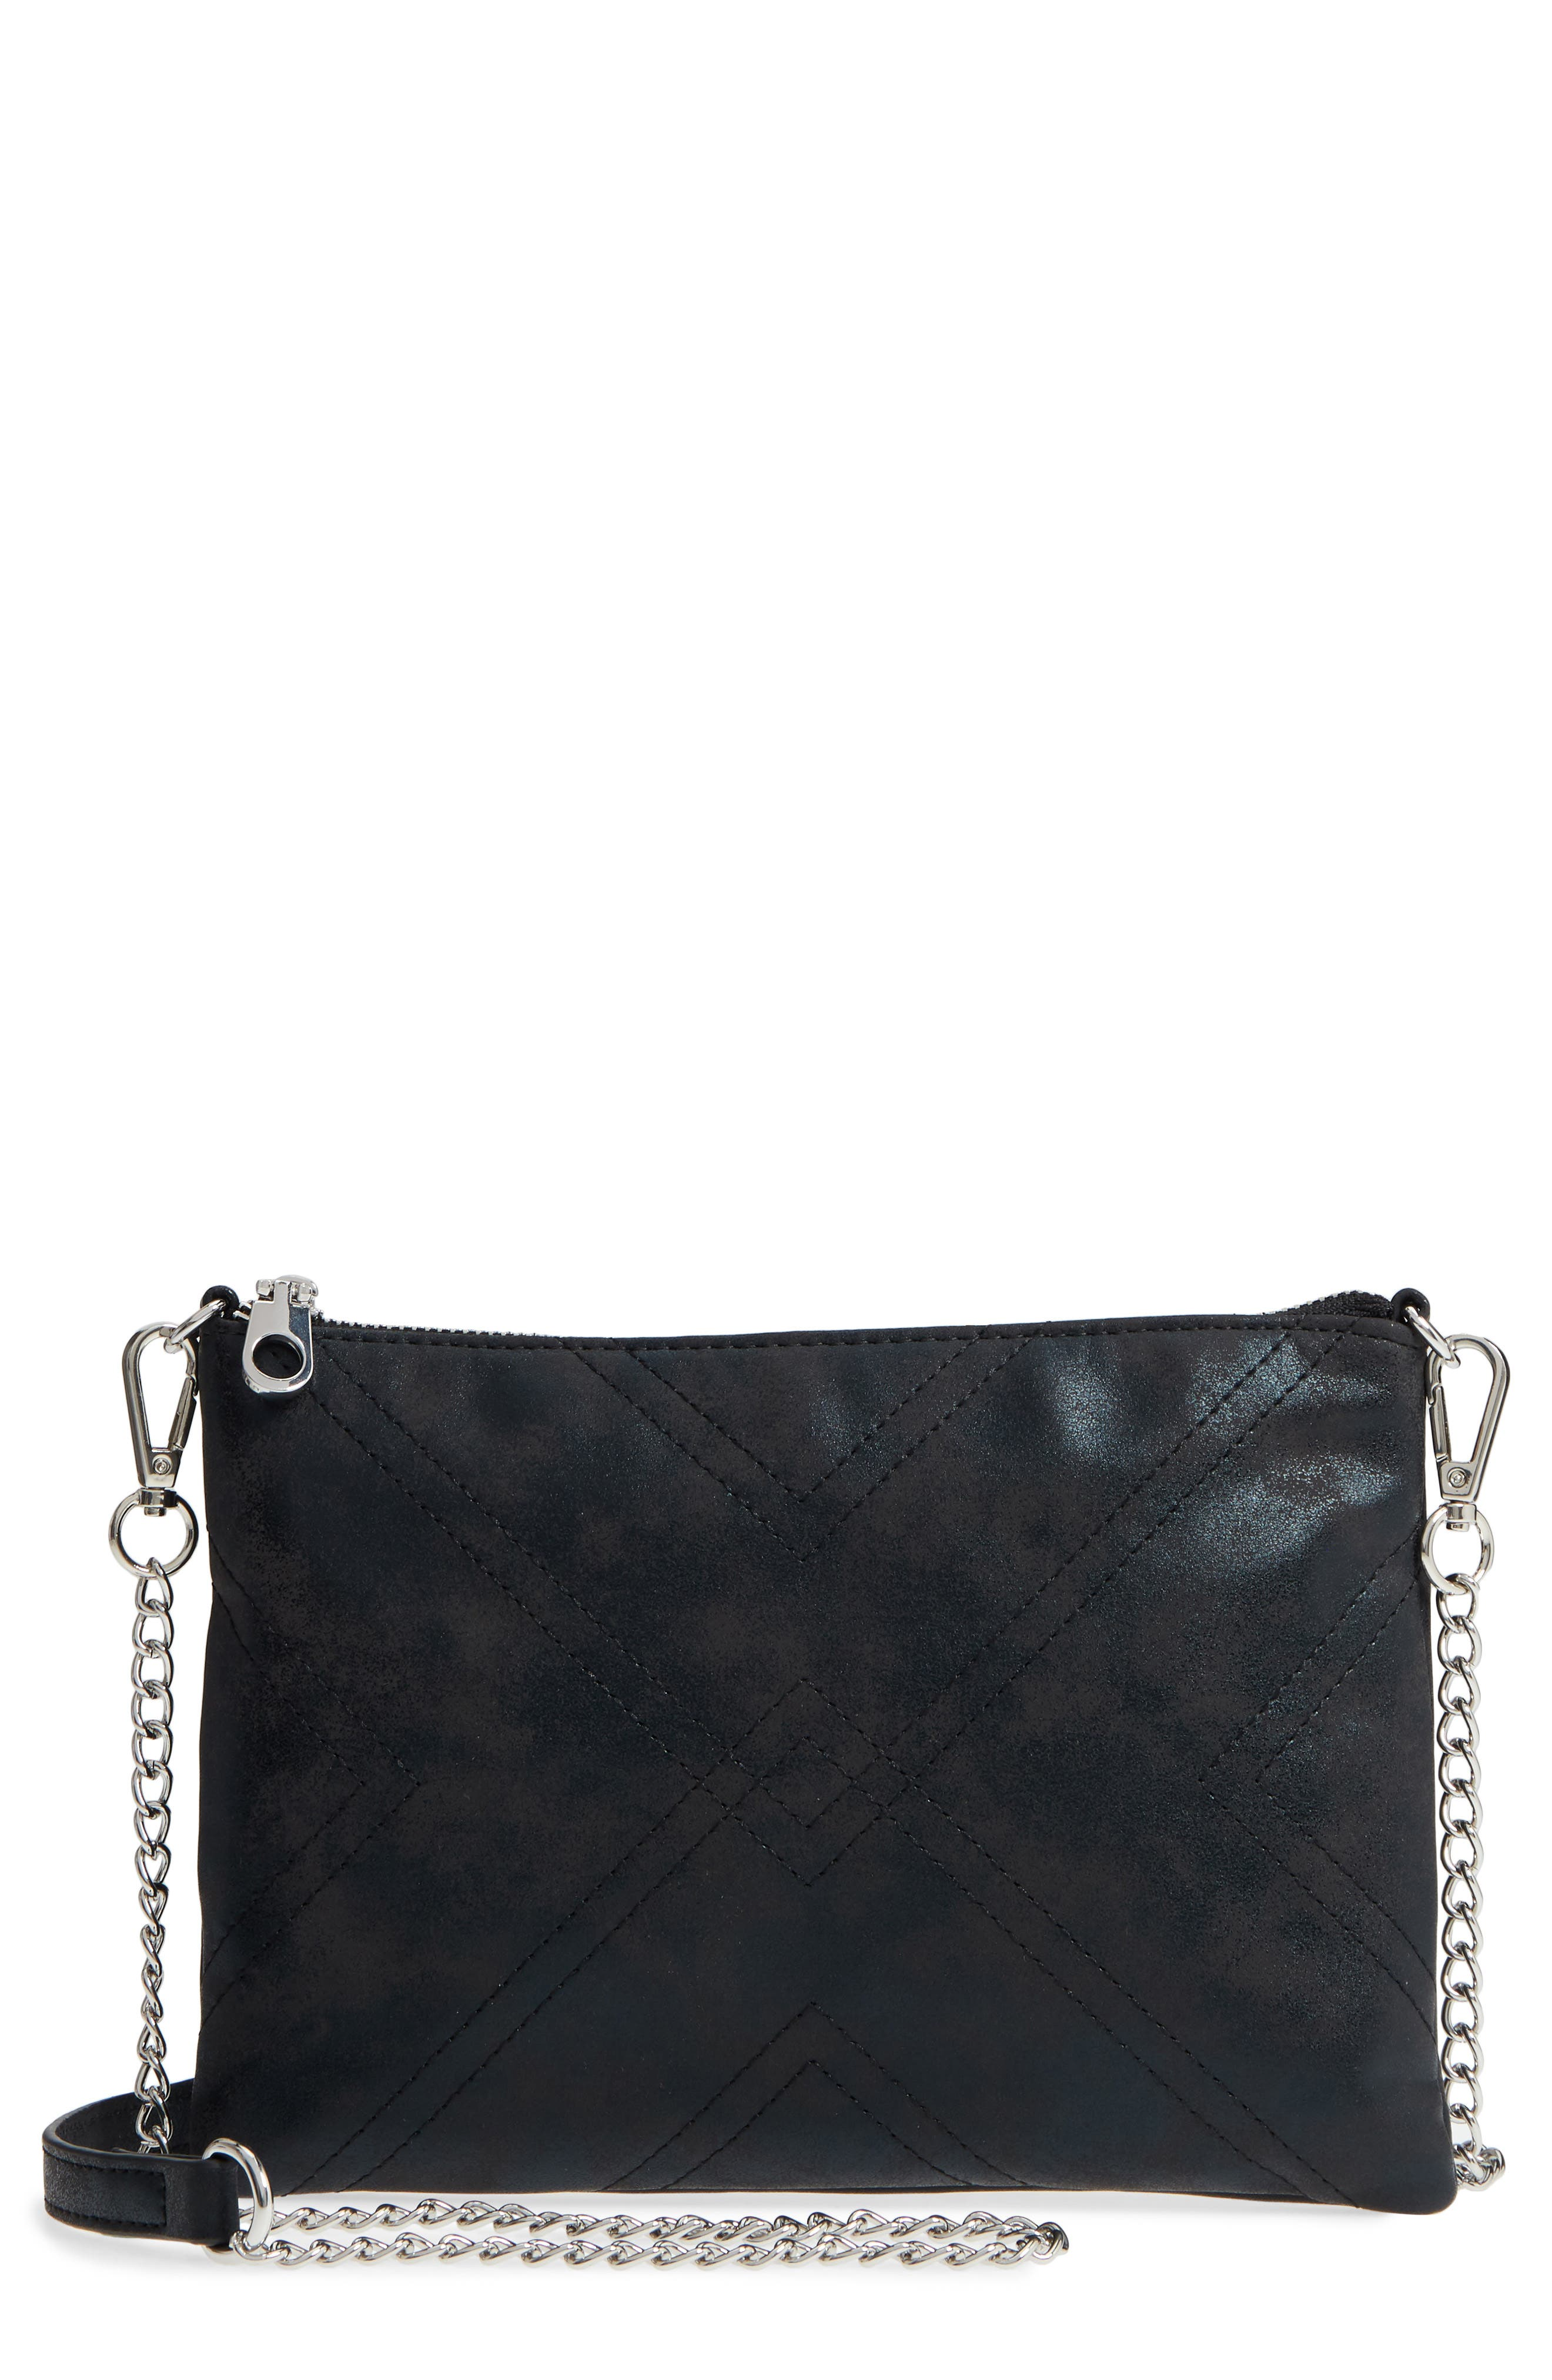 Astley Faux Leather Clutch,                         Main,                         color, Black